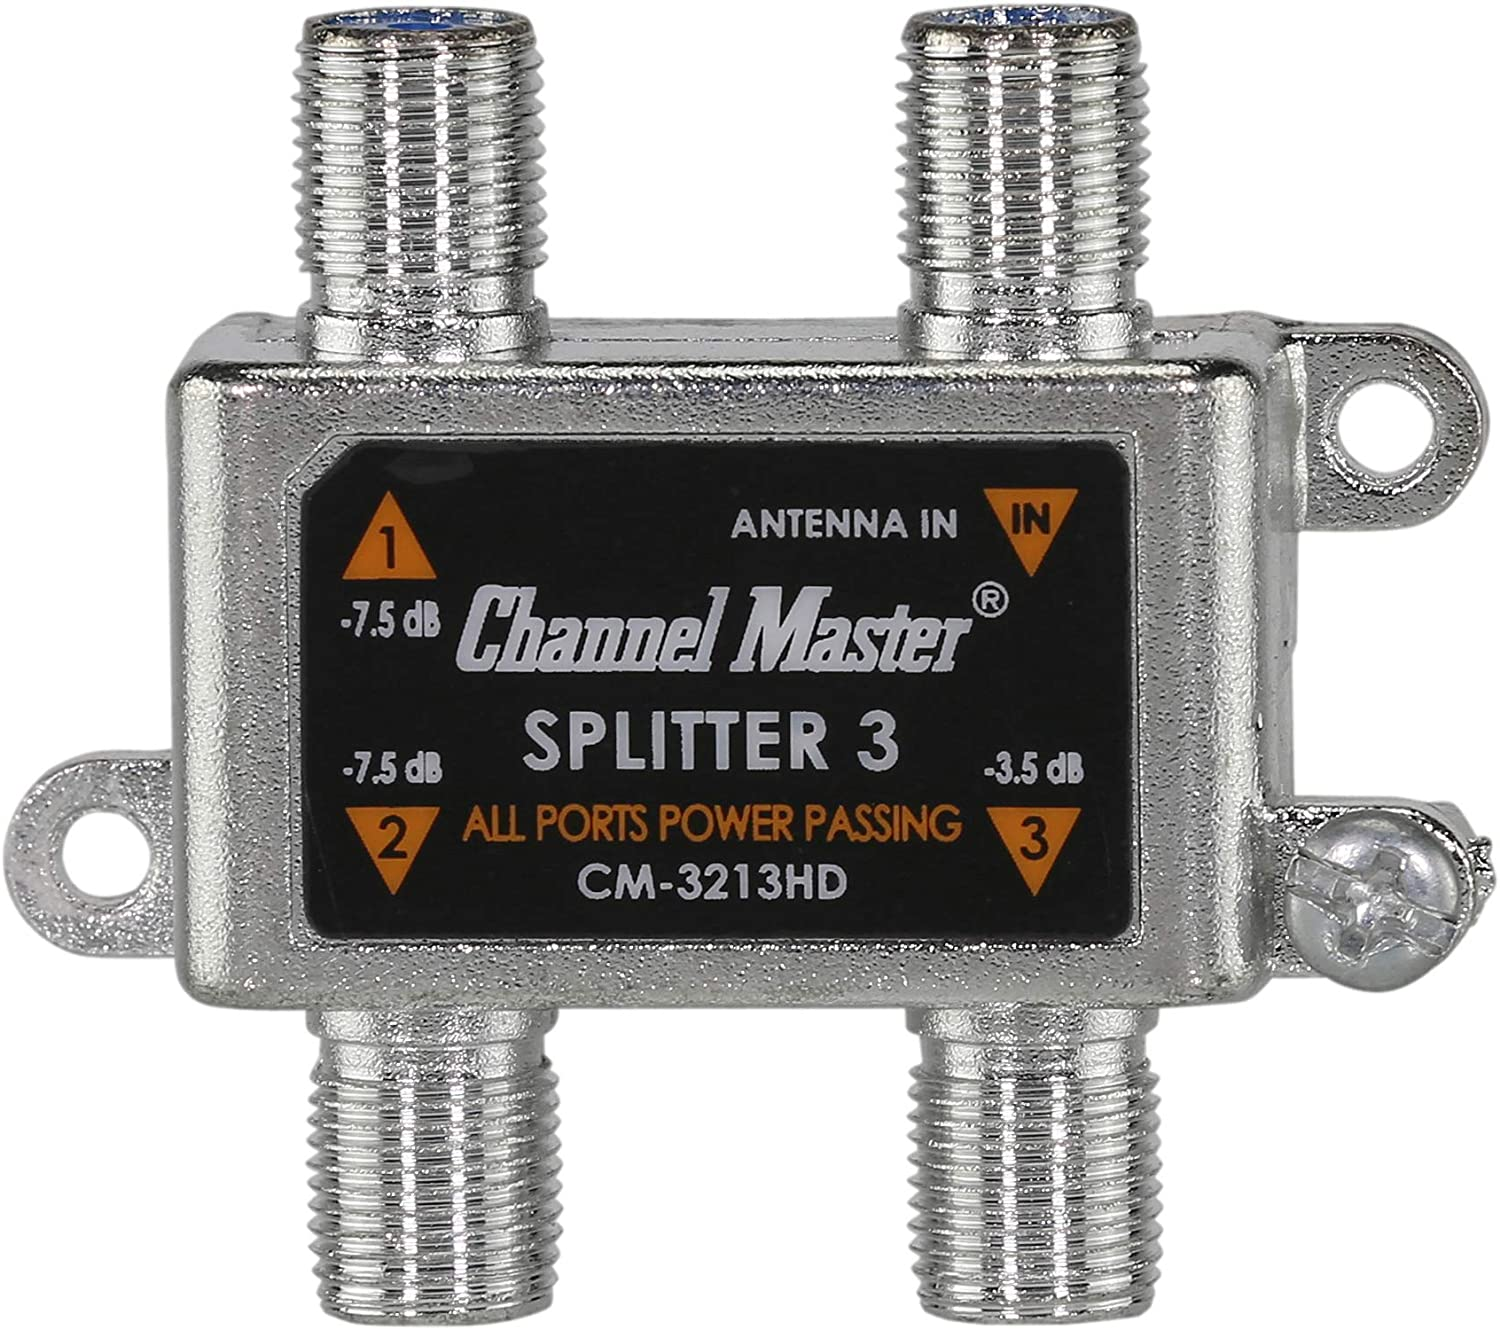 Channel Master CM-3213HD 3-Way Splitter Power Passing for TV Antenna and Cable Signals